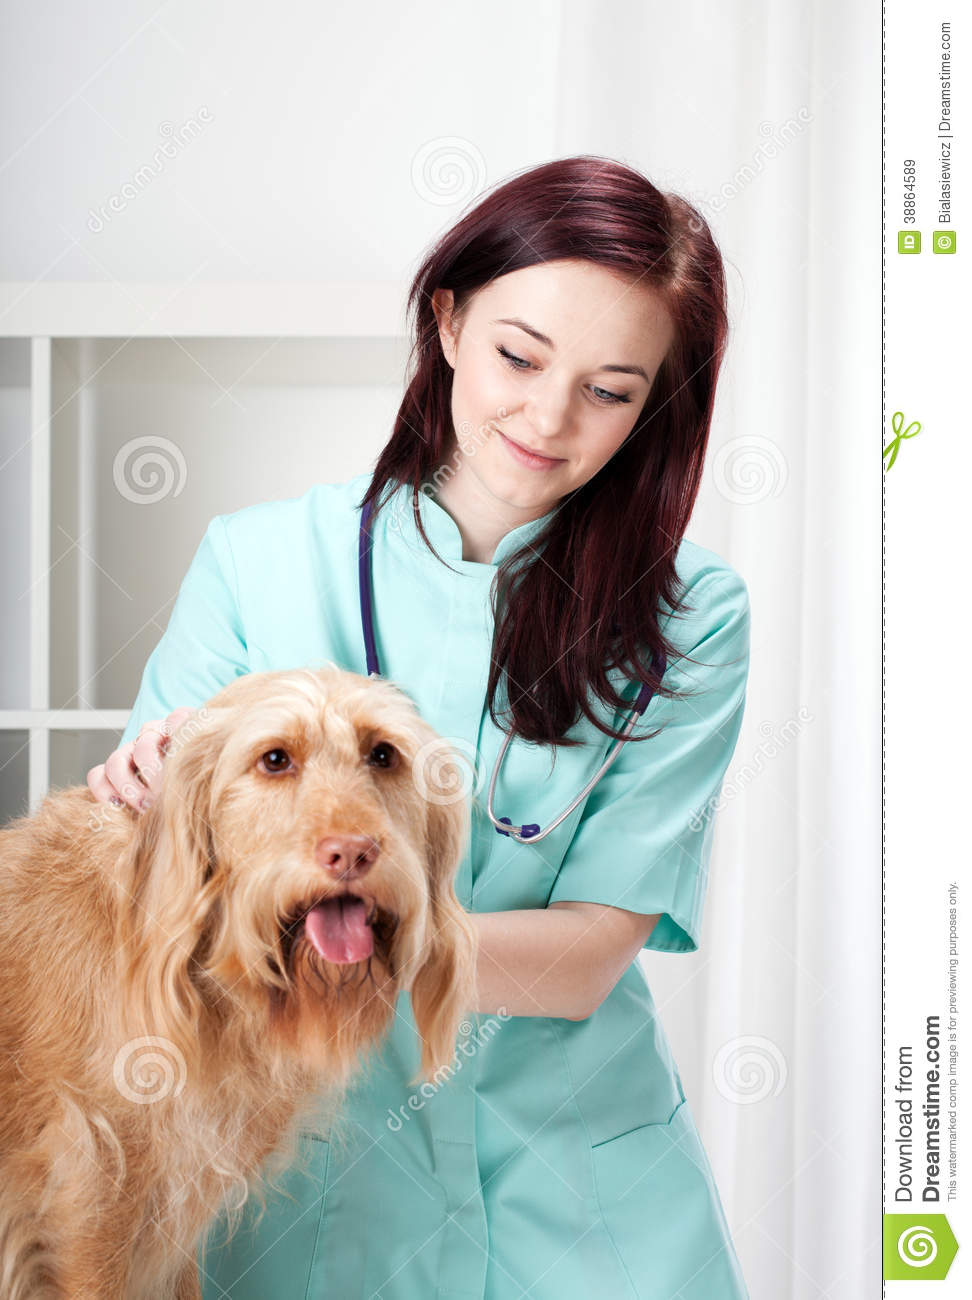 Dog during medical appointment